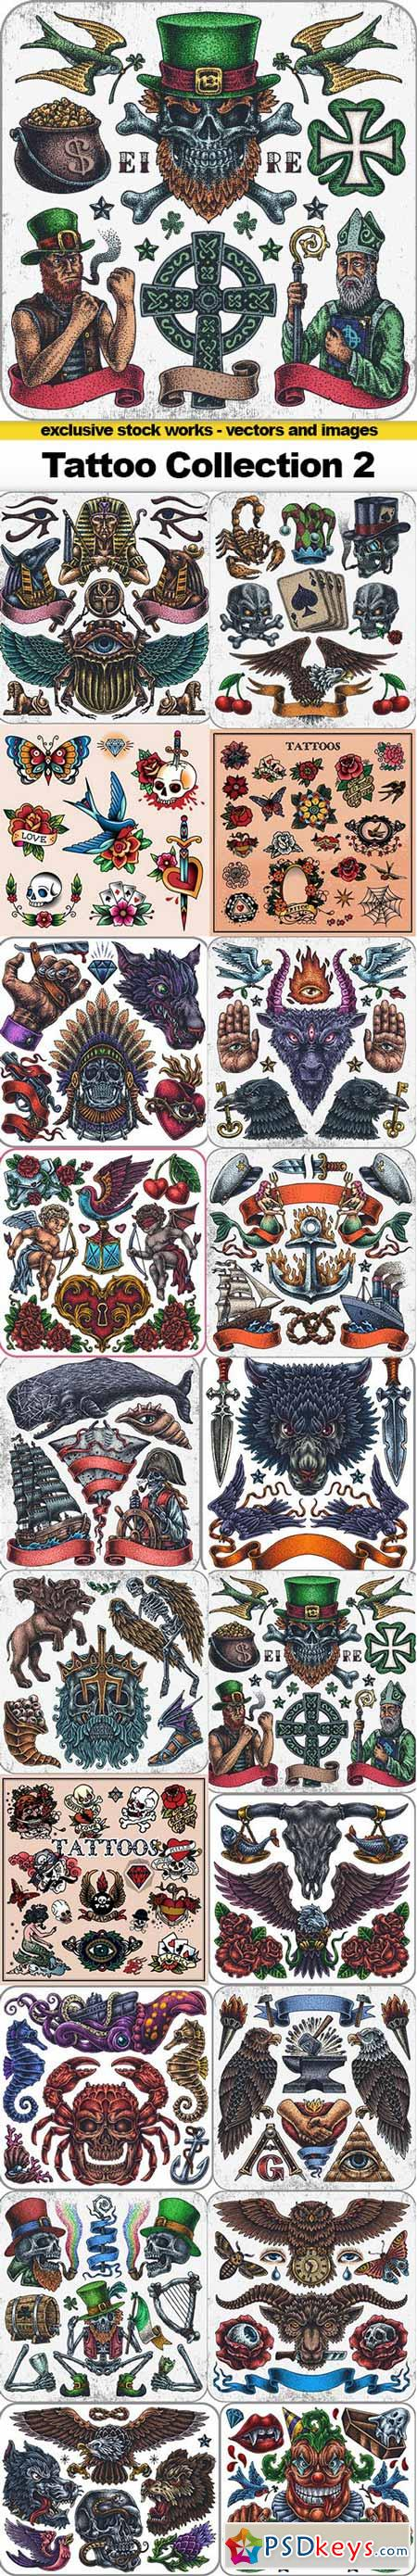 Tattoo Collection 2 - 20x EPS